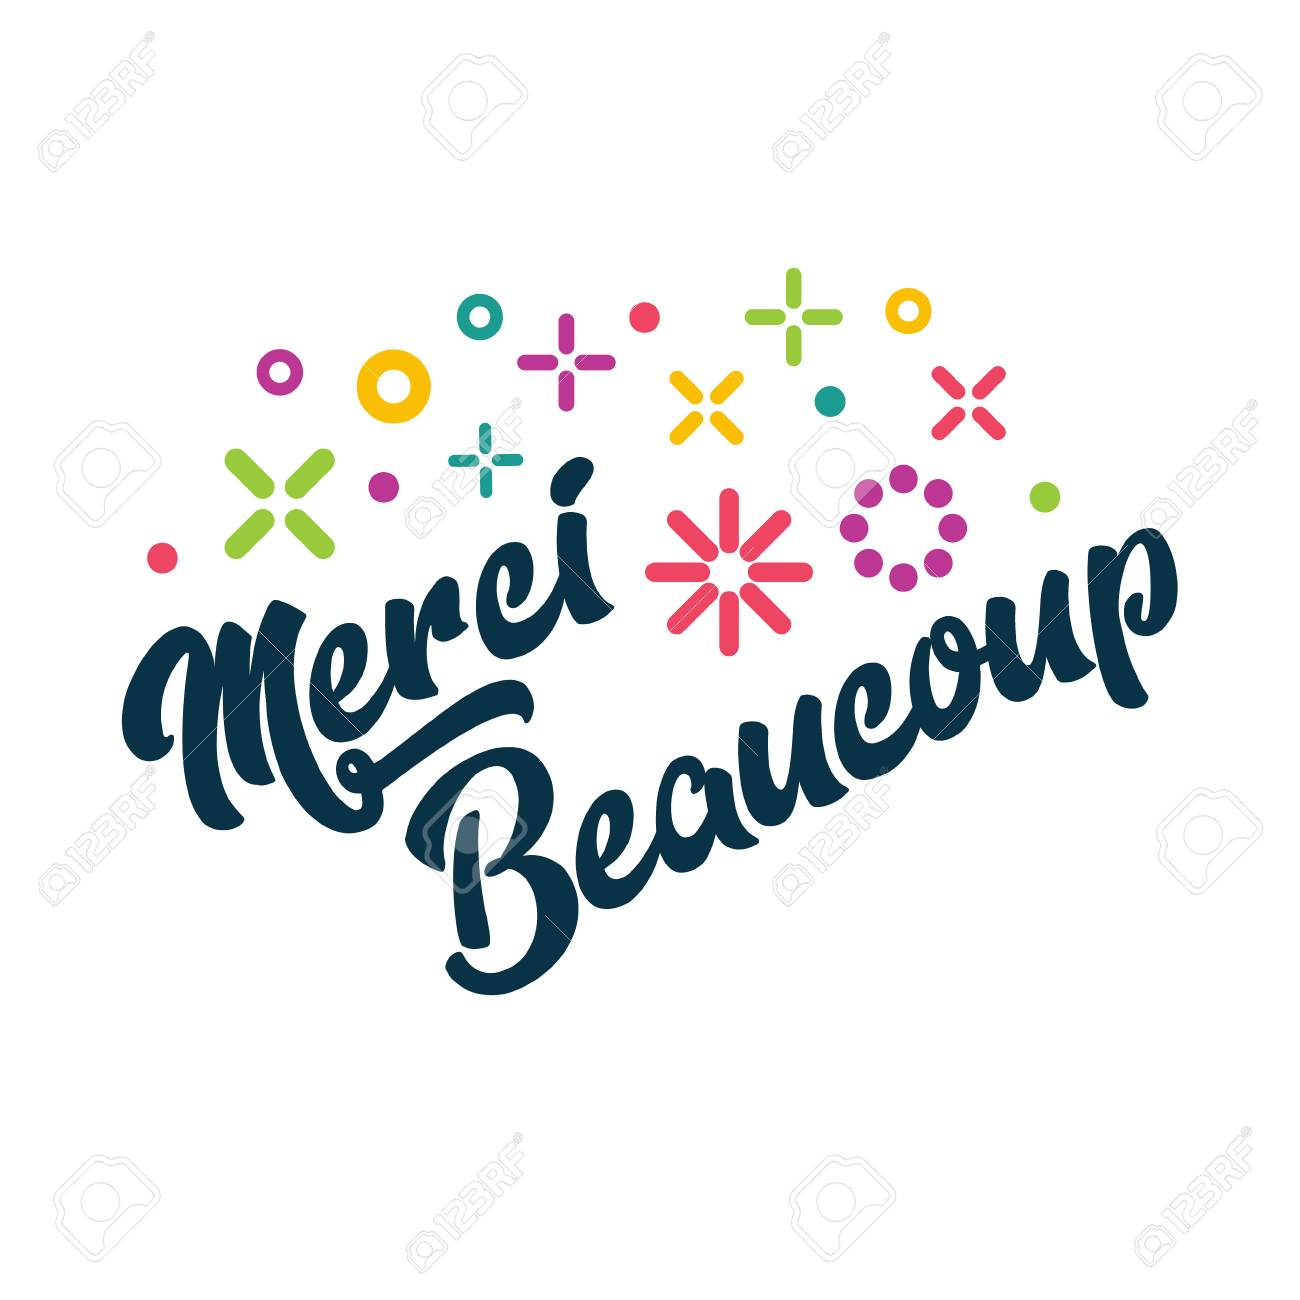 Merci beaucoup french thank you greeting card royalty free merci beaucoup french thank you greeting card stock vector 94100092 m4hsunfo